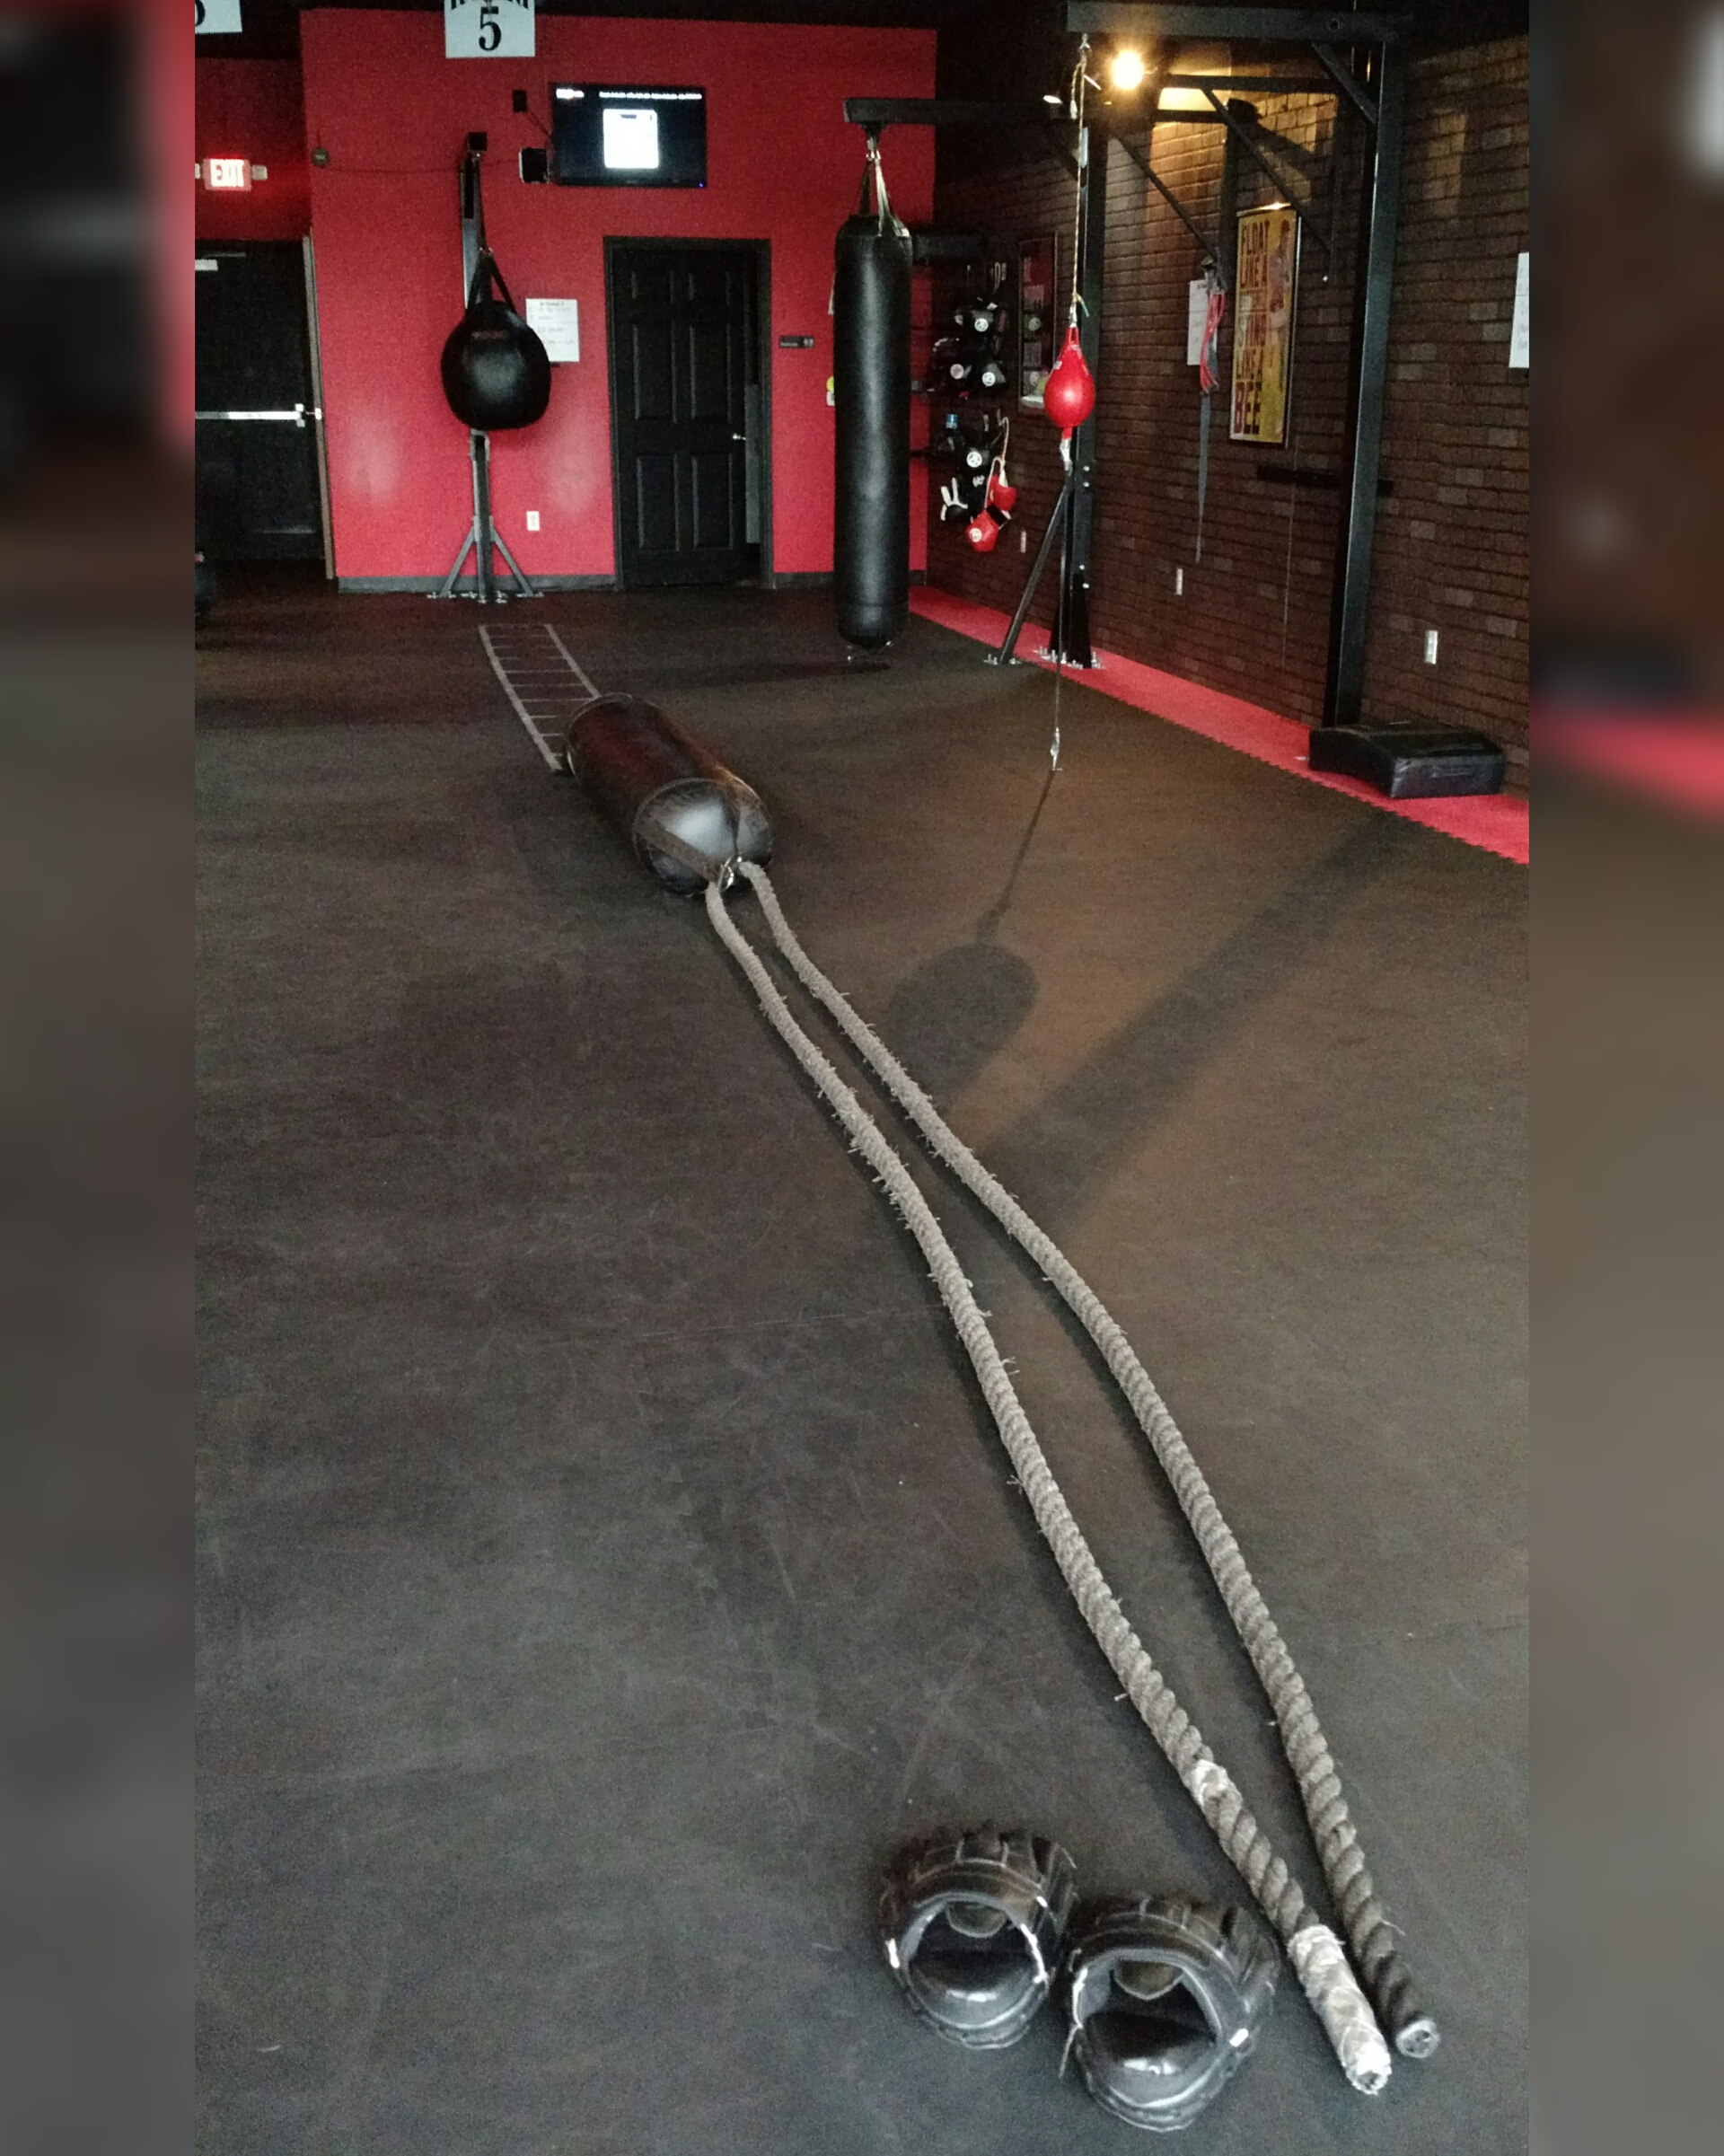 The 9Round Gym where ladders, ropes, and heavy bags are commonplace modes of calorie-burning.